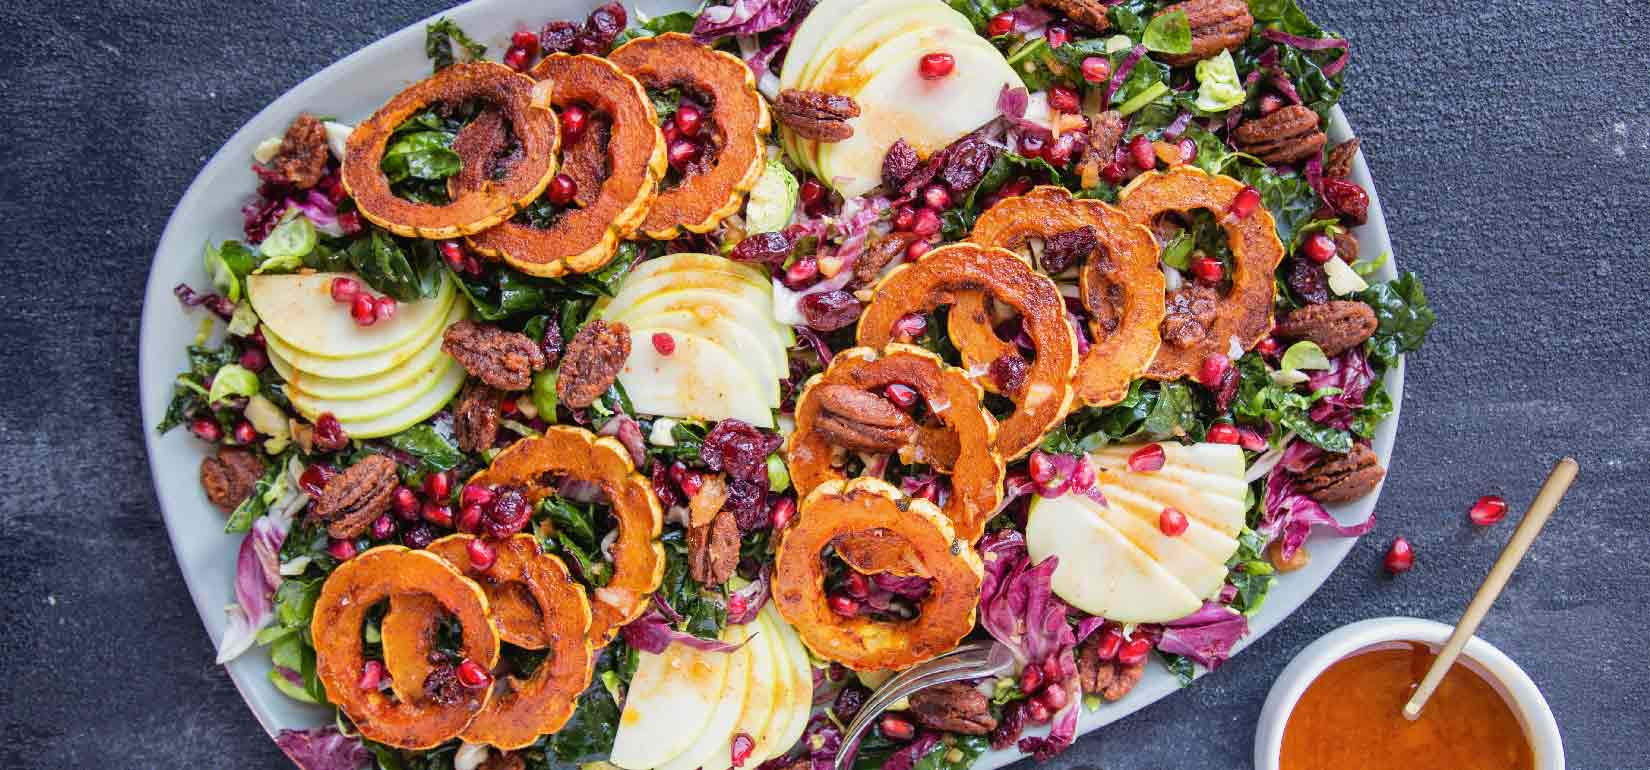 Organic Kale, Radicchio and Brussels Sprout Salad